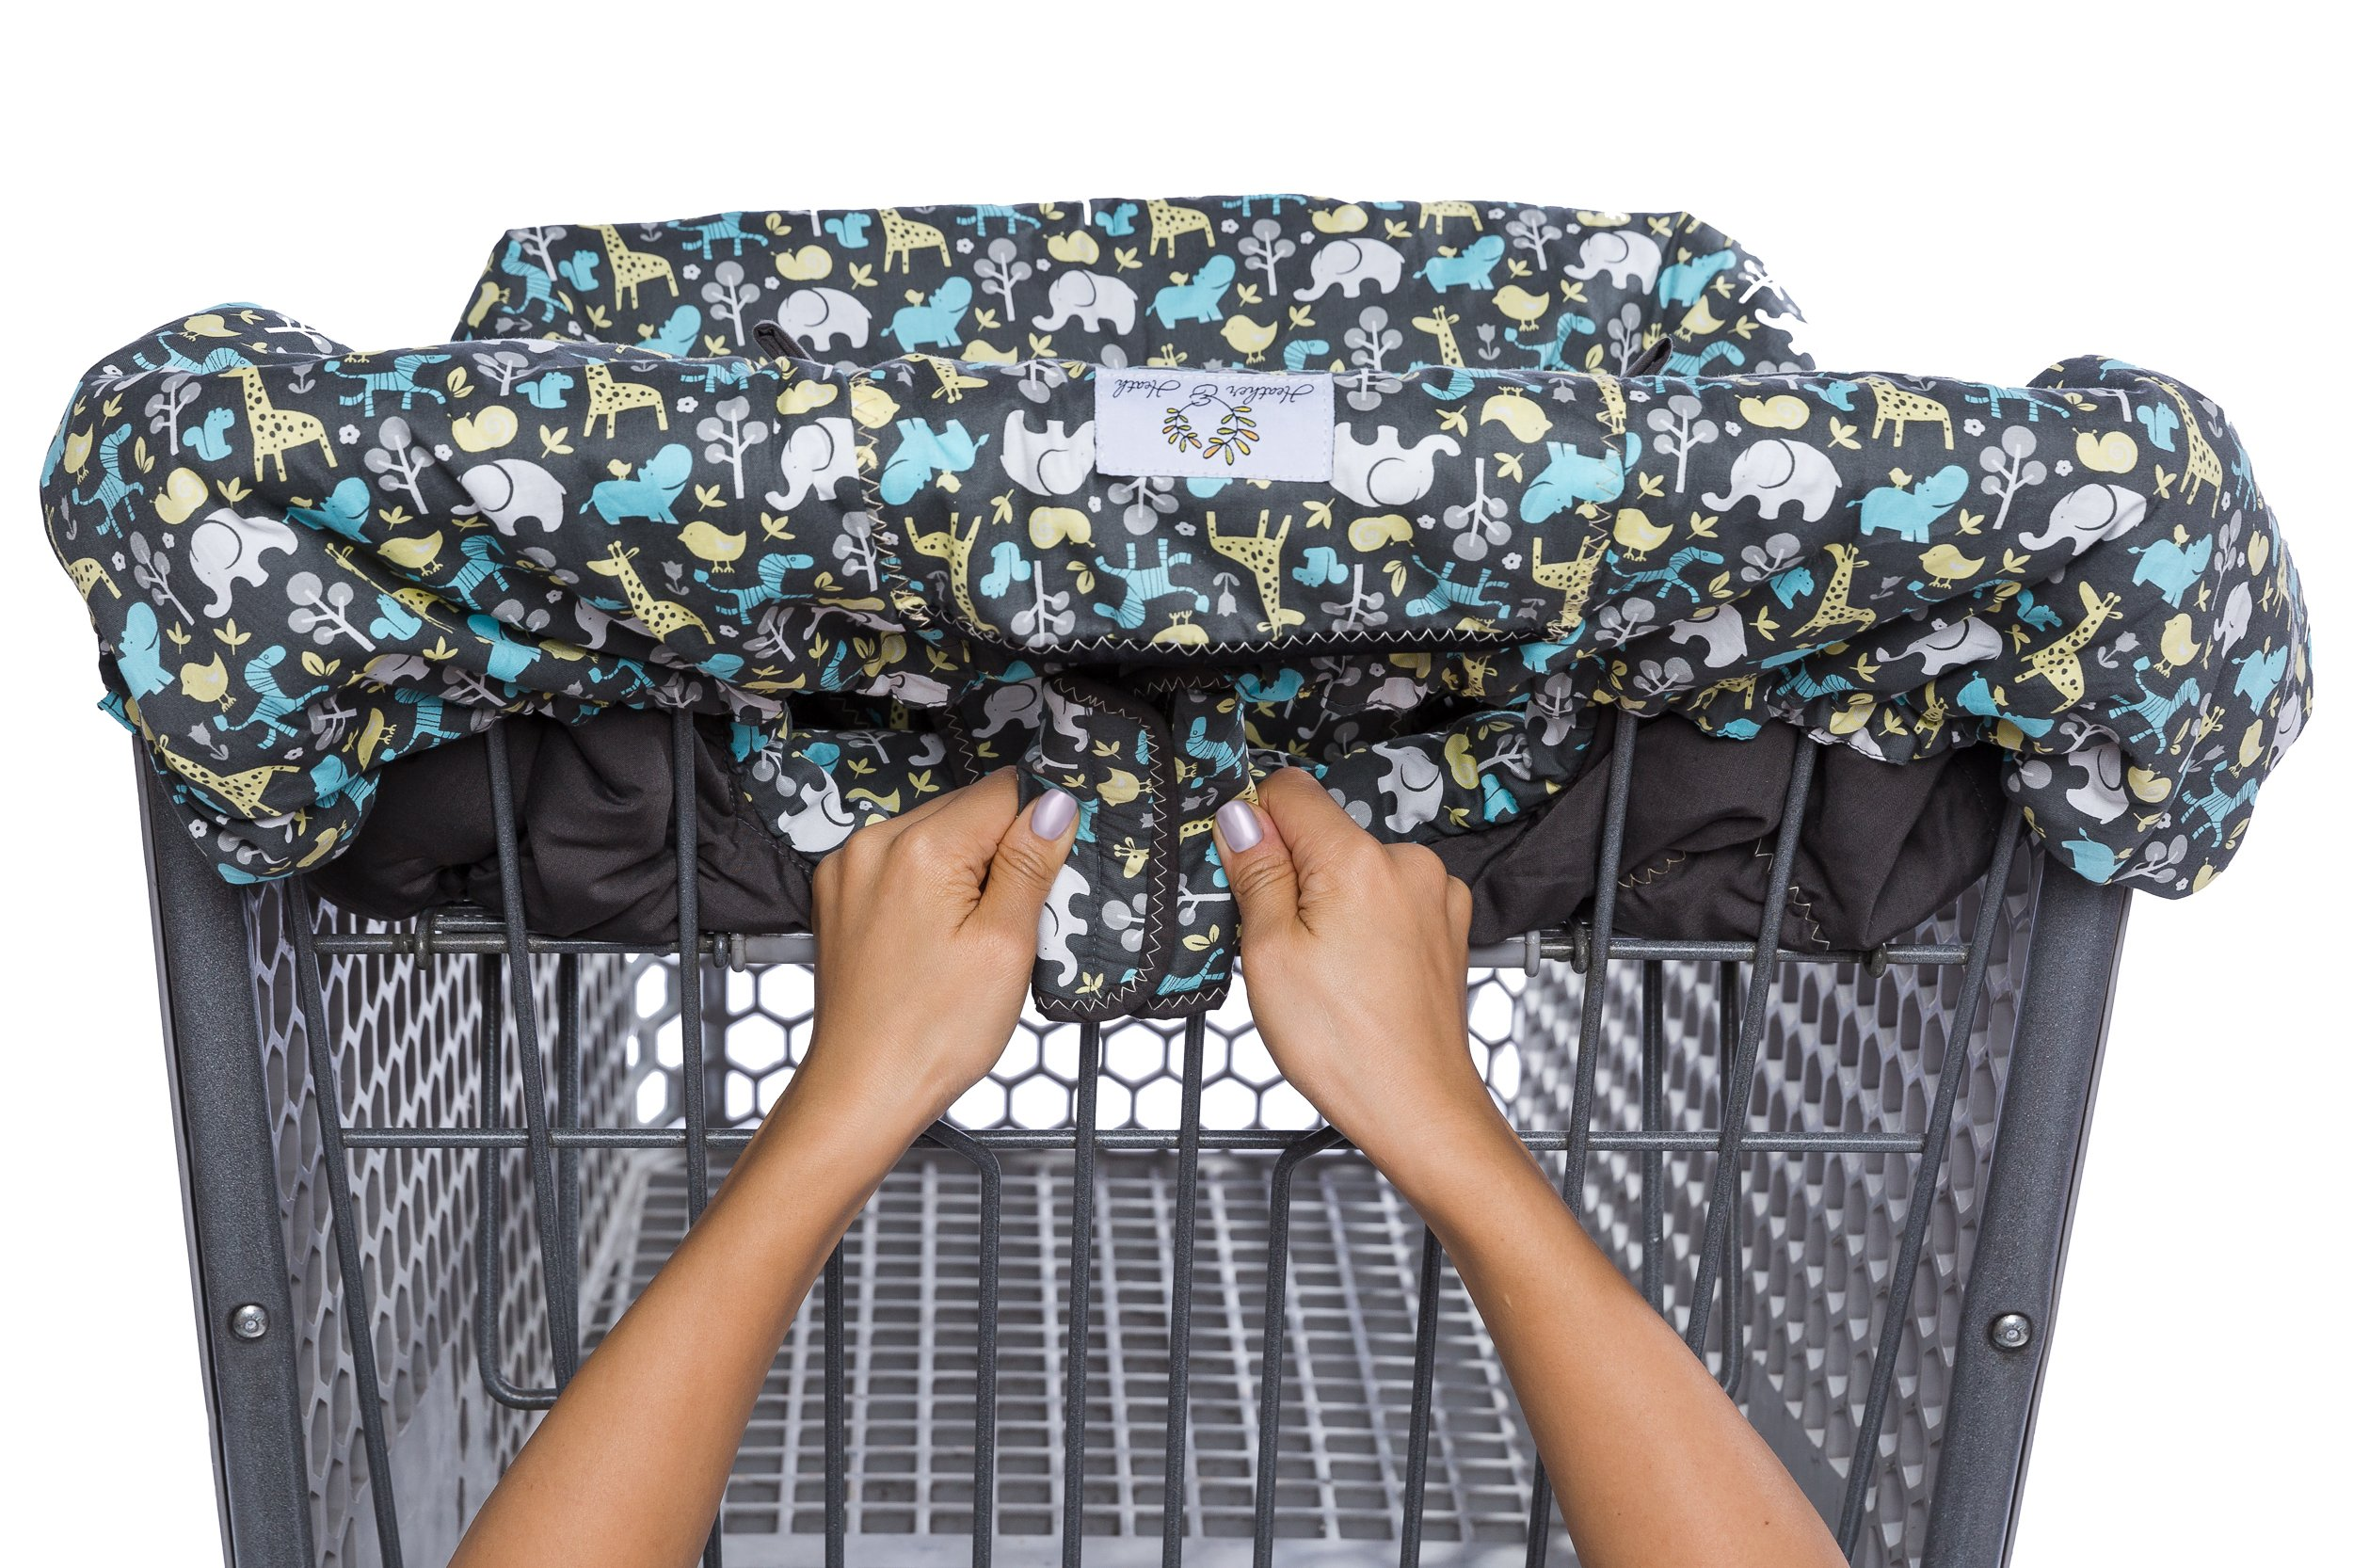 2-in-1 Shopping Cart Cover and High Chair Cover, Universal Fit, Ultra Plush, 100 Percent Cotton Upper, Full Safety Harness, Machine Washable for Baby, Toddler, Boy or Girl (Grey) by Heather and Heath Kids (Image #2)